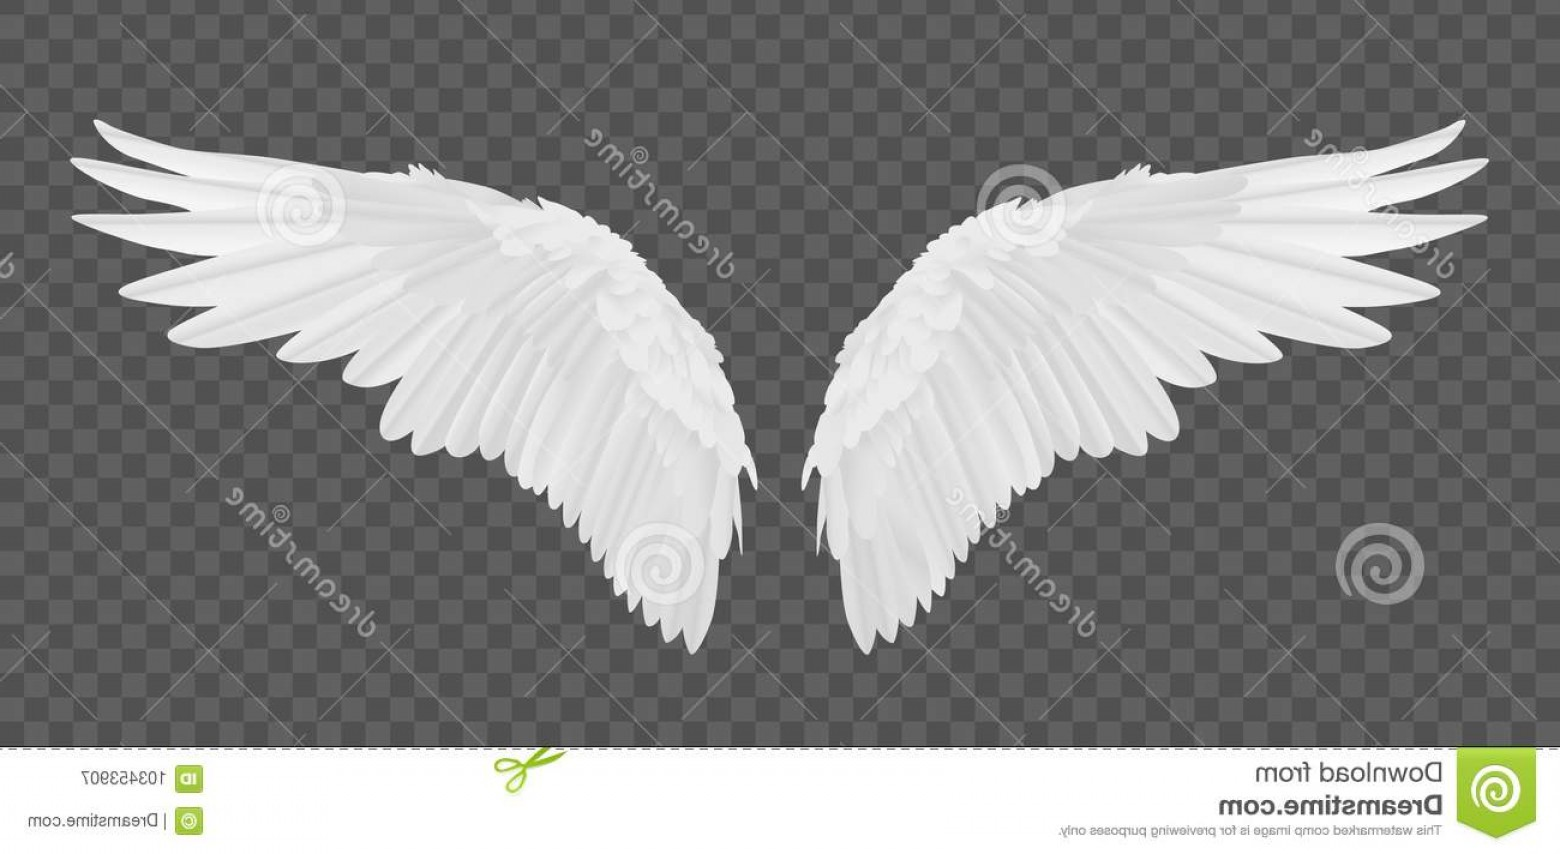 Torn Angel Wings Vector: Vector Realistic Angel Wings Isolated Transparent Background Vector Realistic Angel Wings Isolated Transparent Background Image